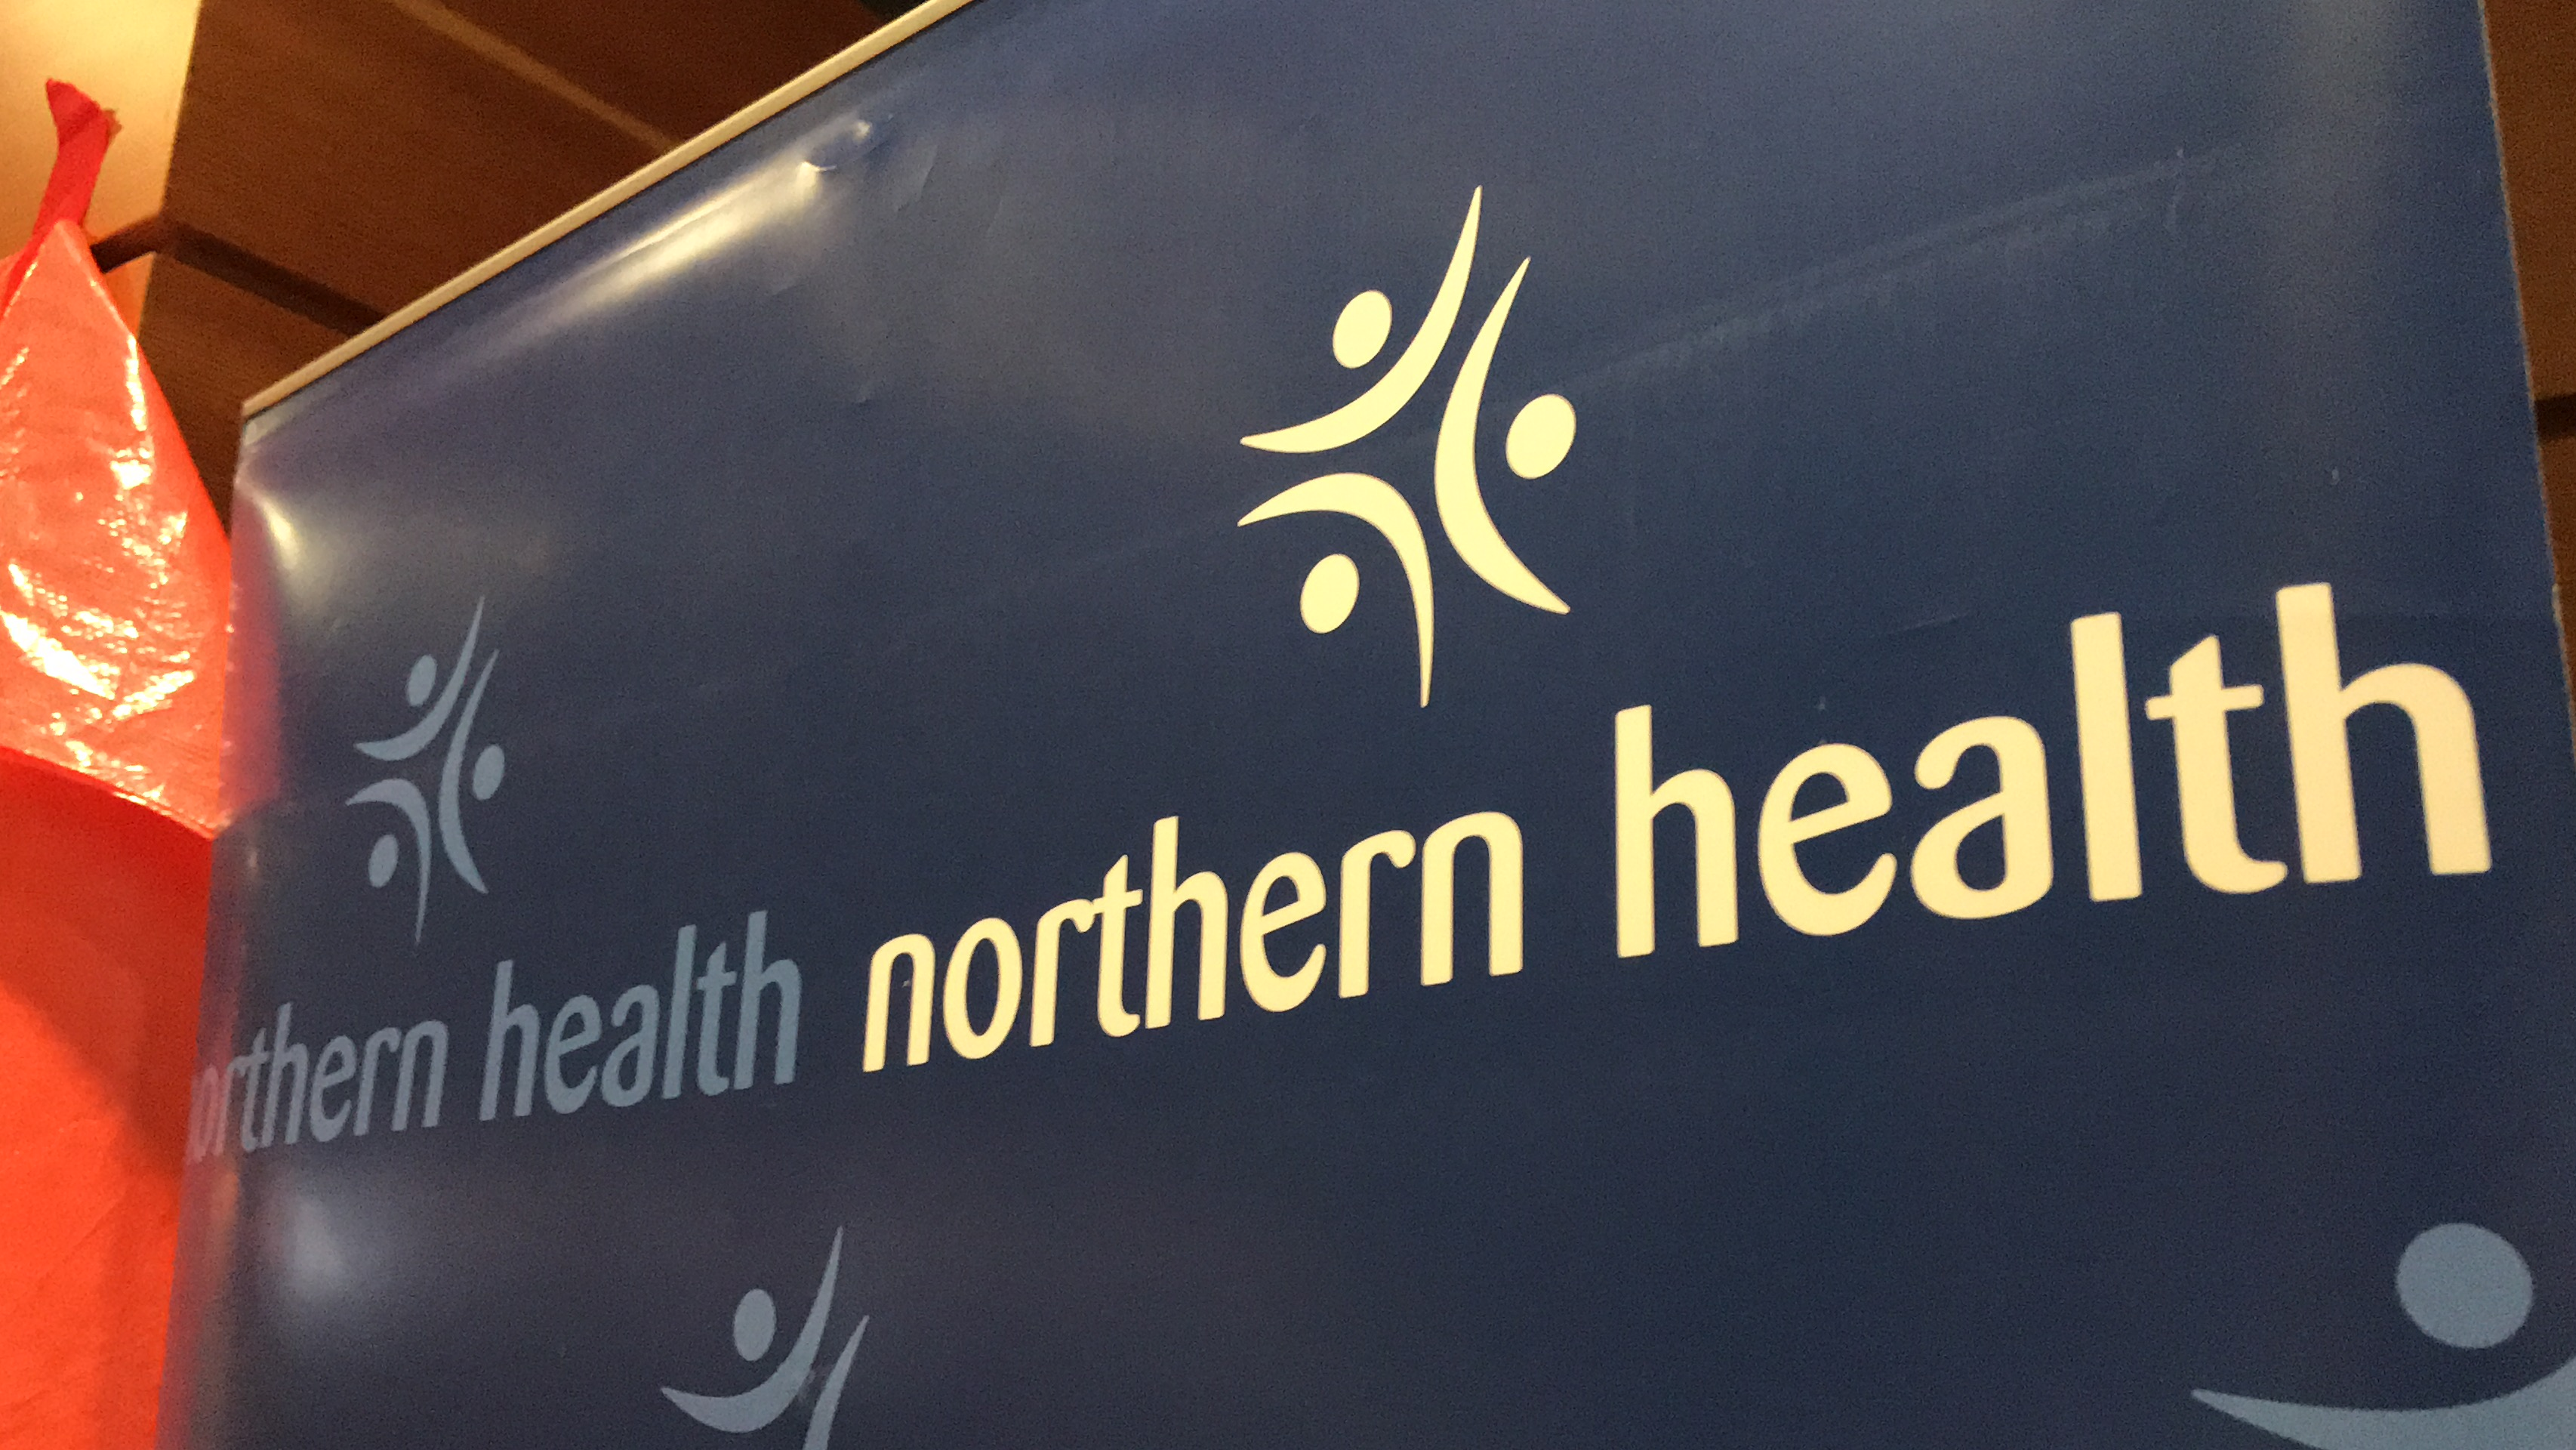 Northern Health | My PG Now